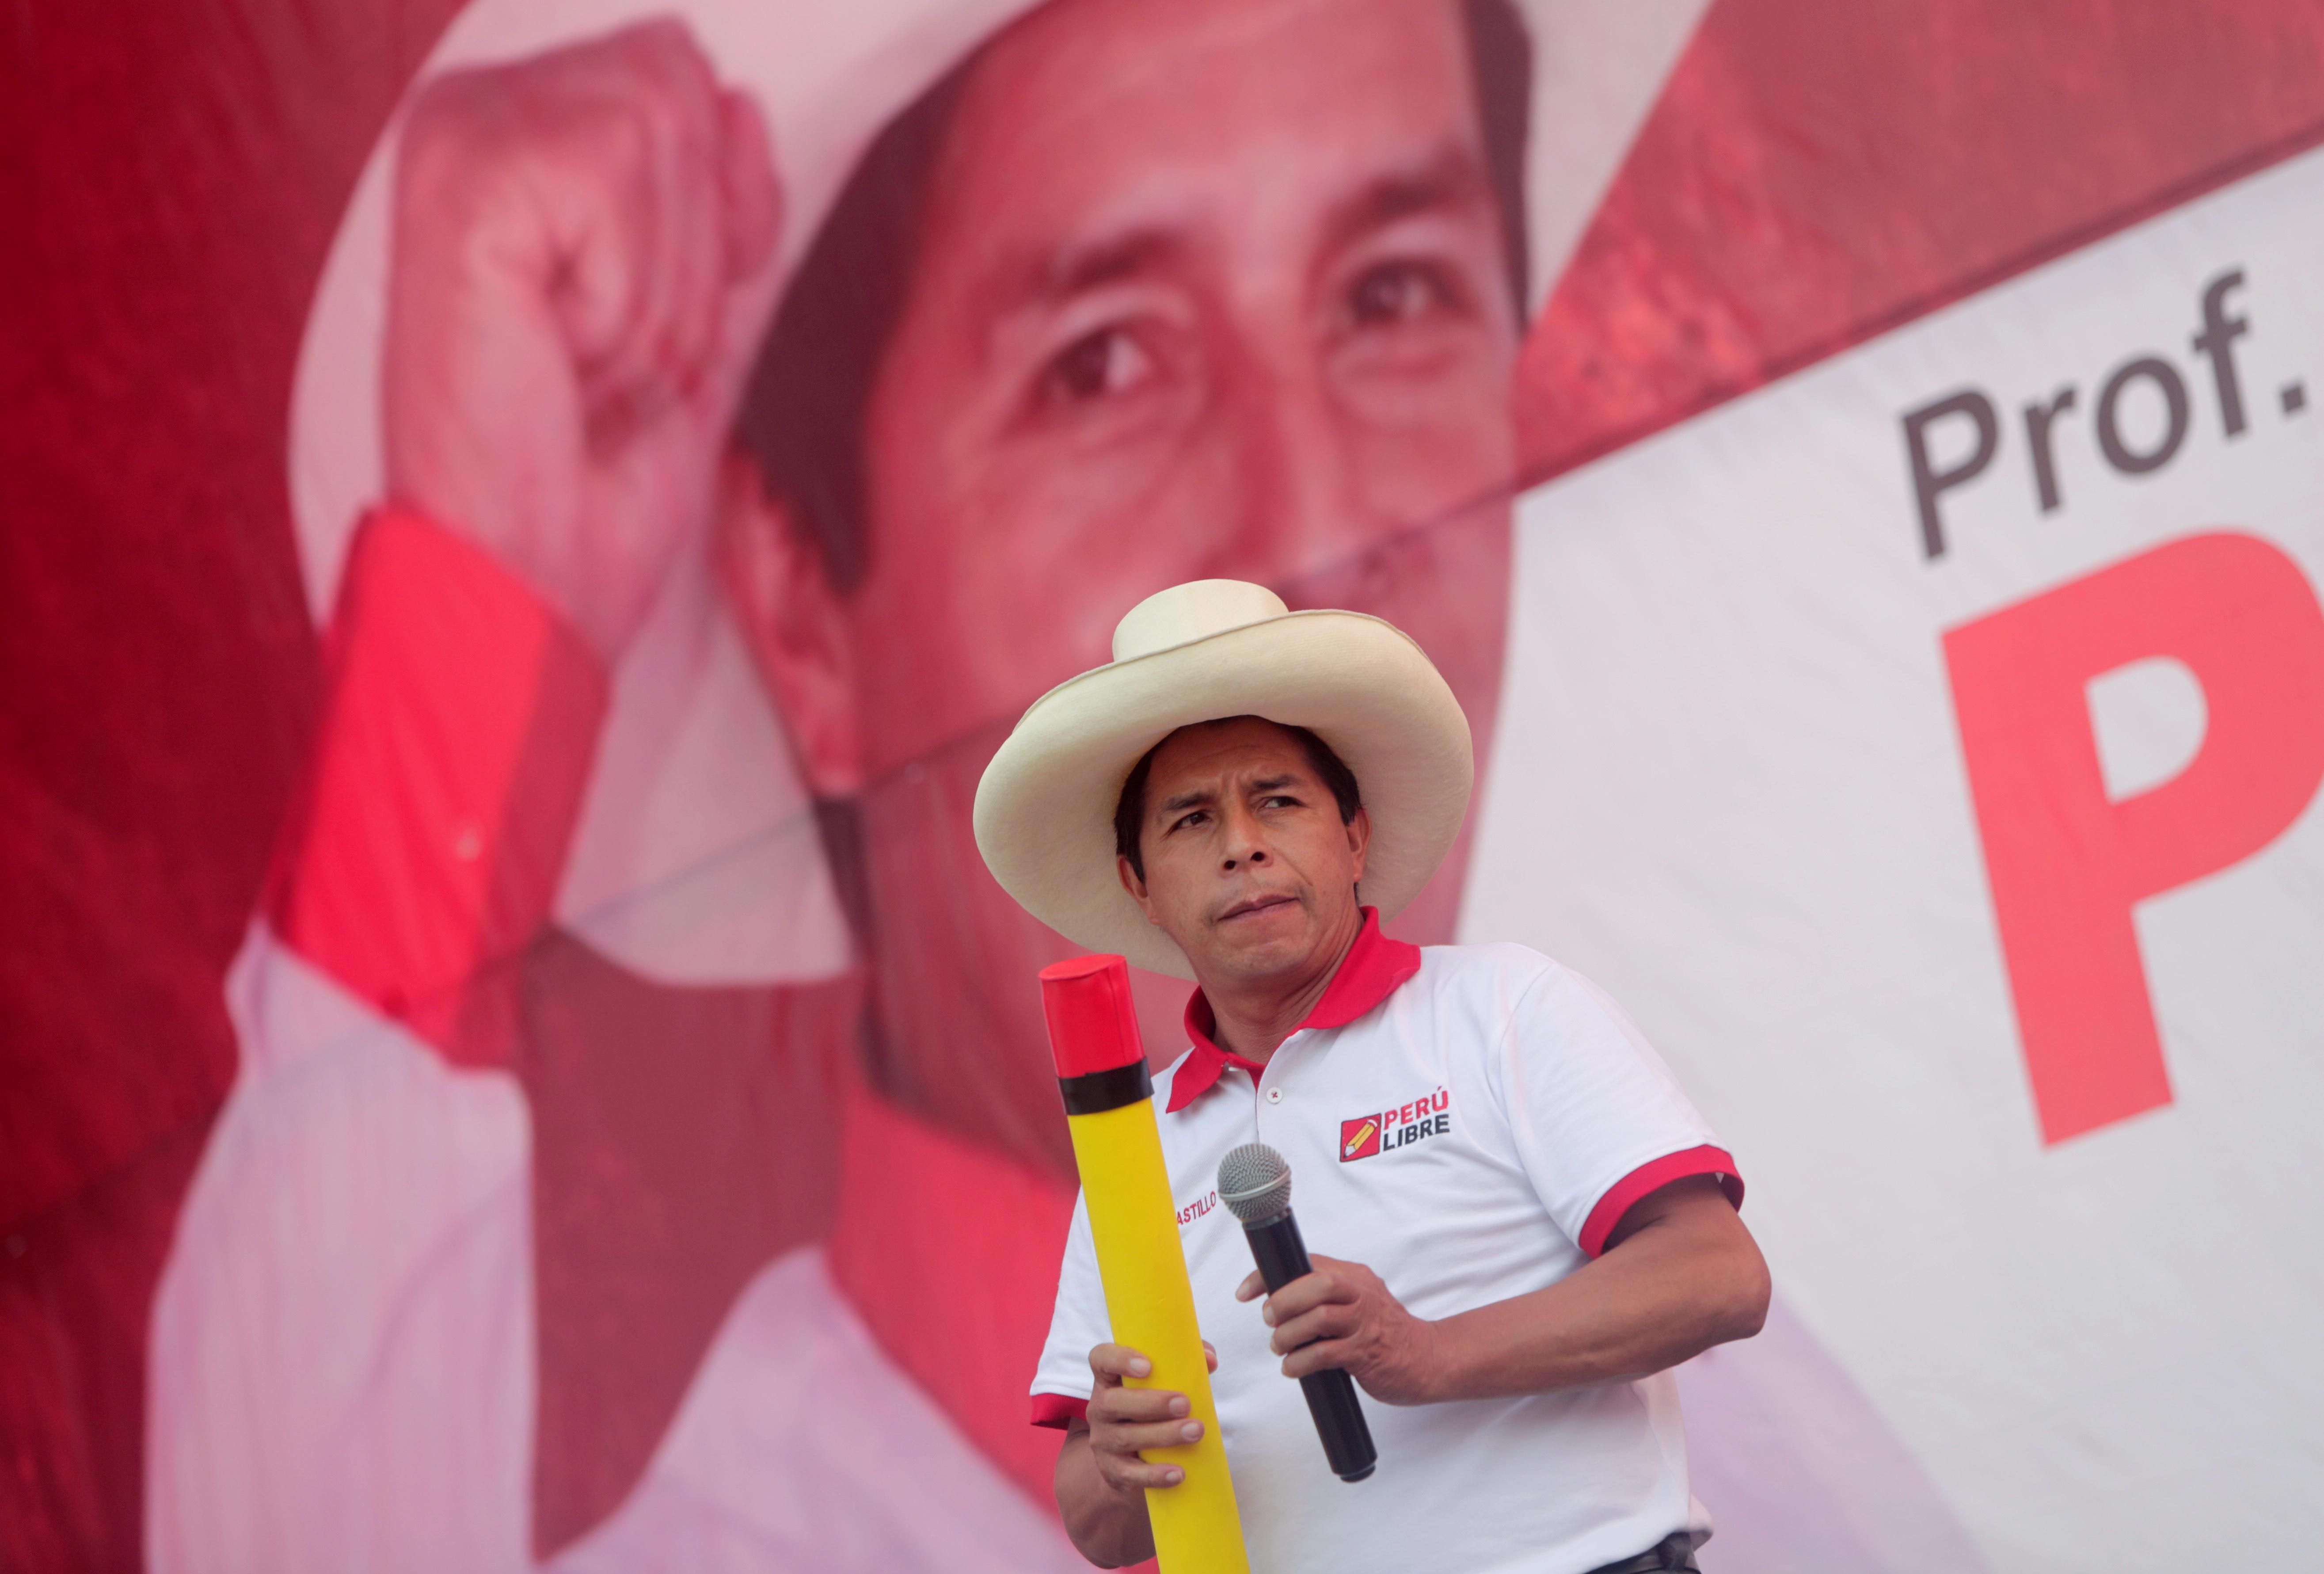 Peru makes a radical choice. Will it pan out?